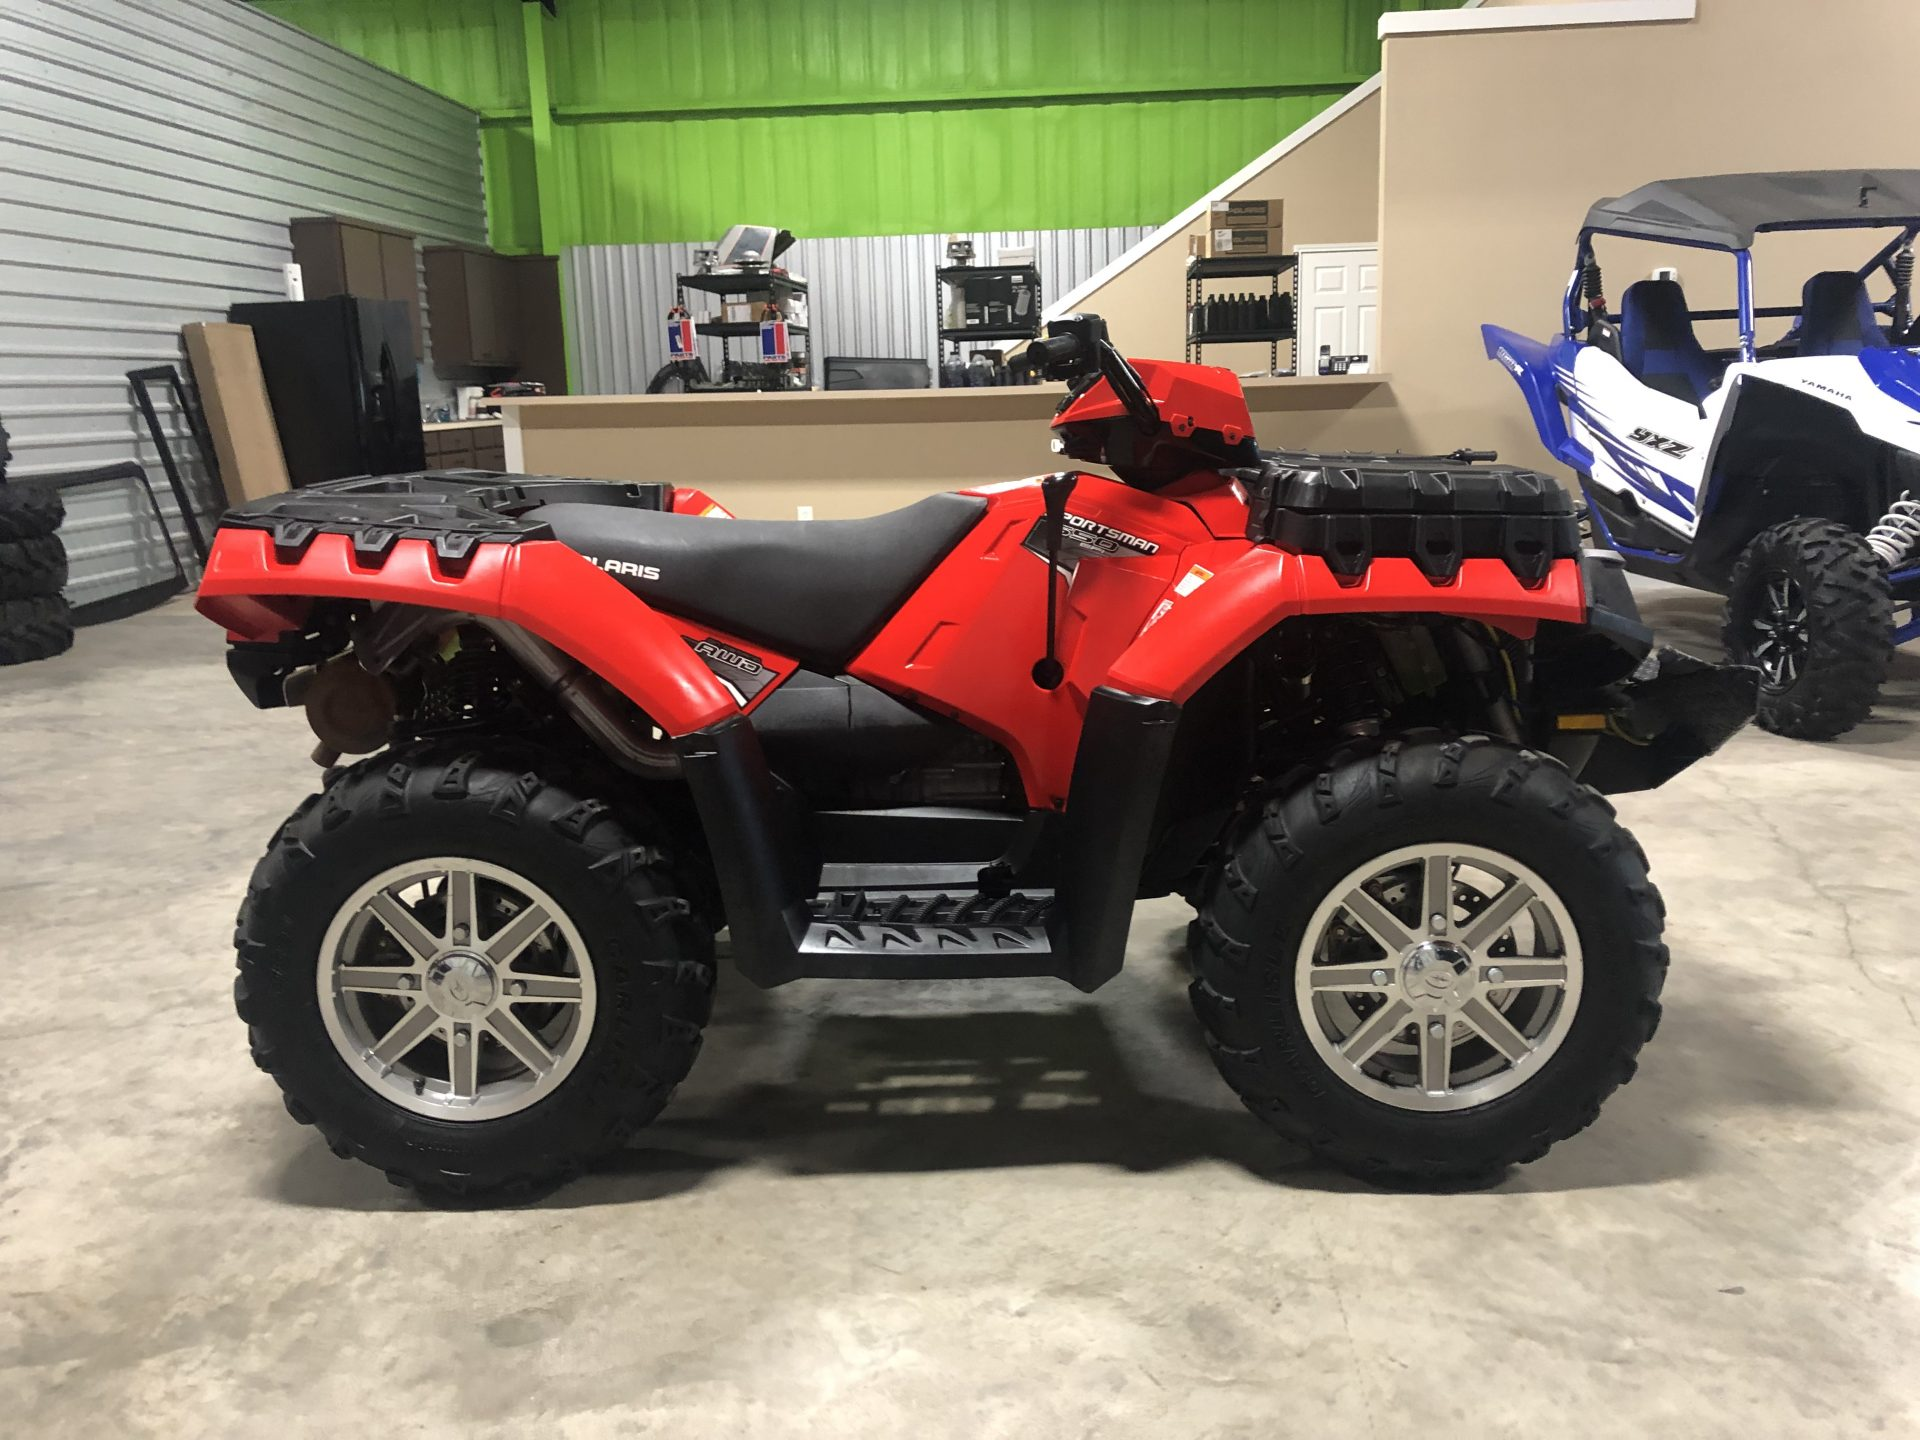 2012 Polaris Sportsman 550 Image